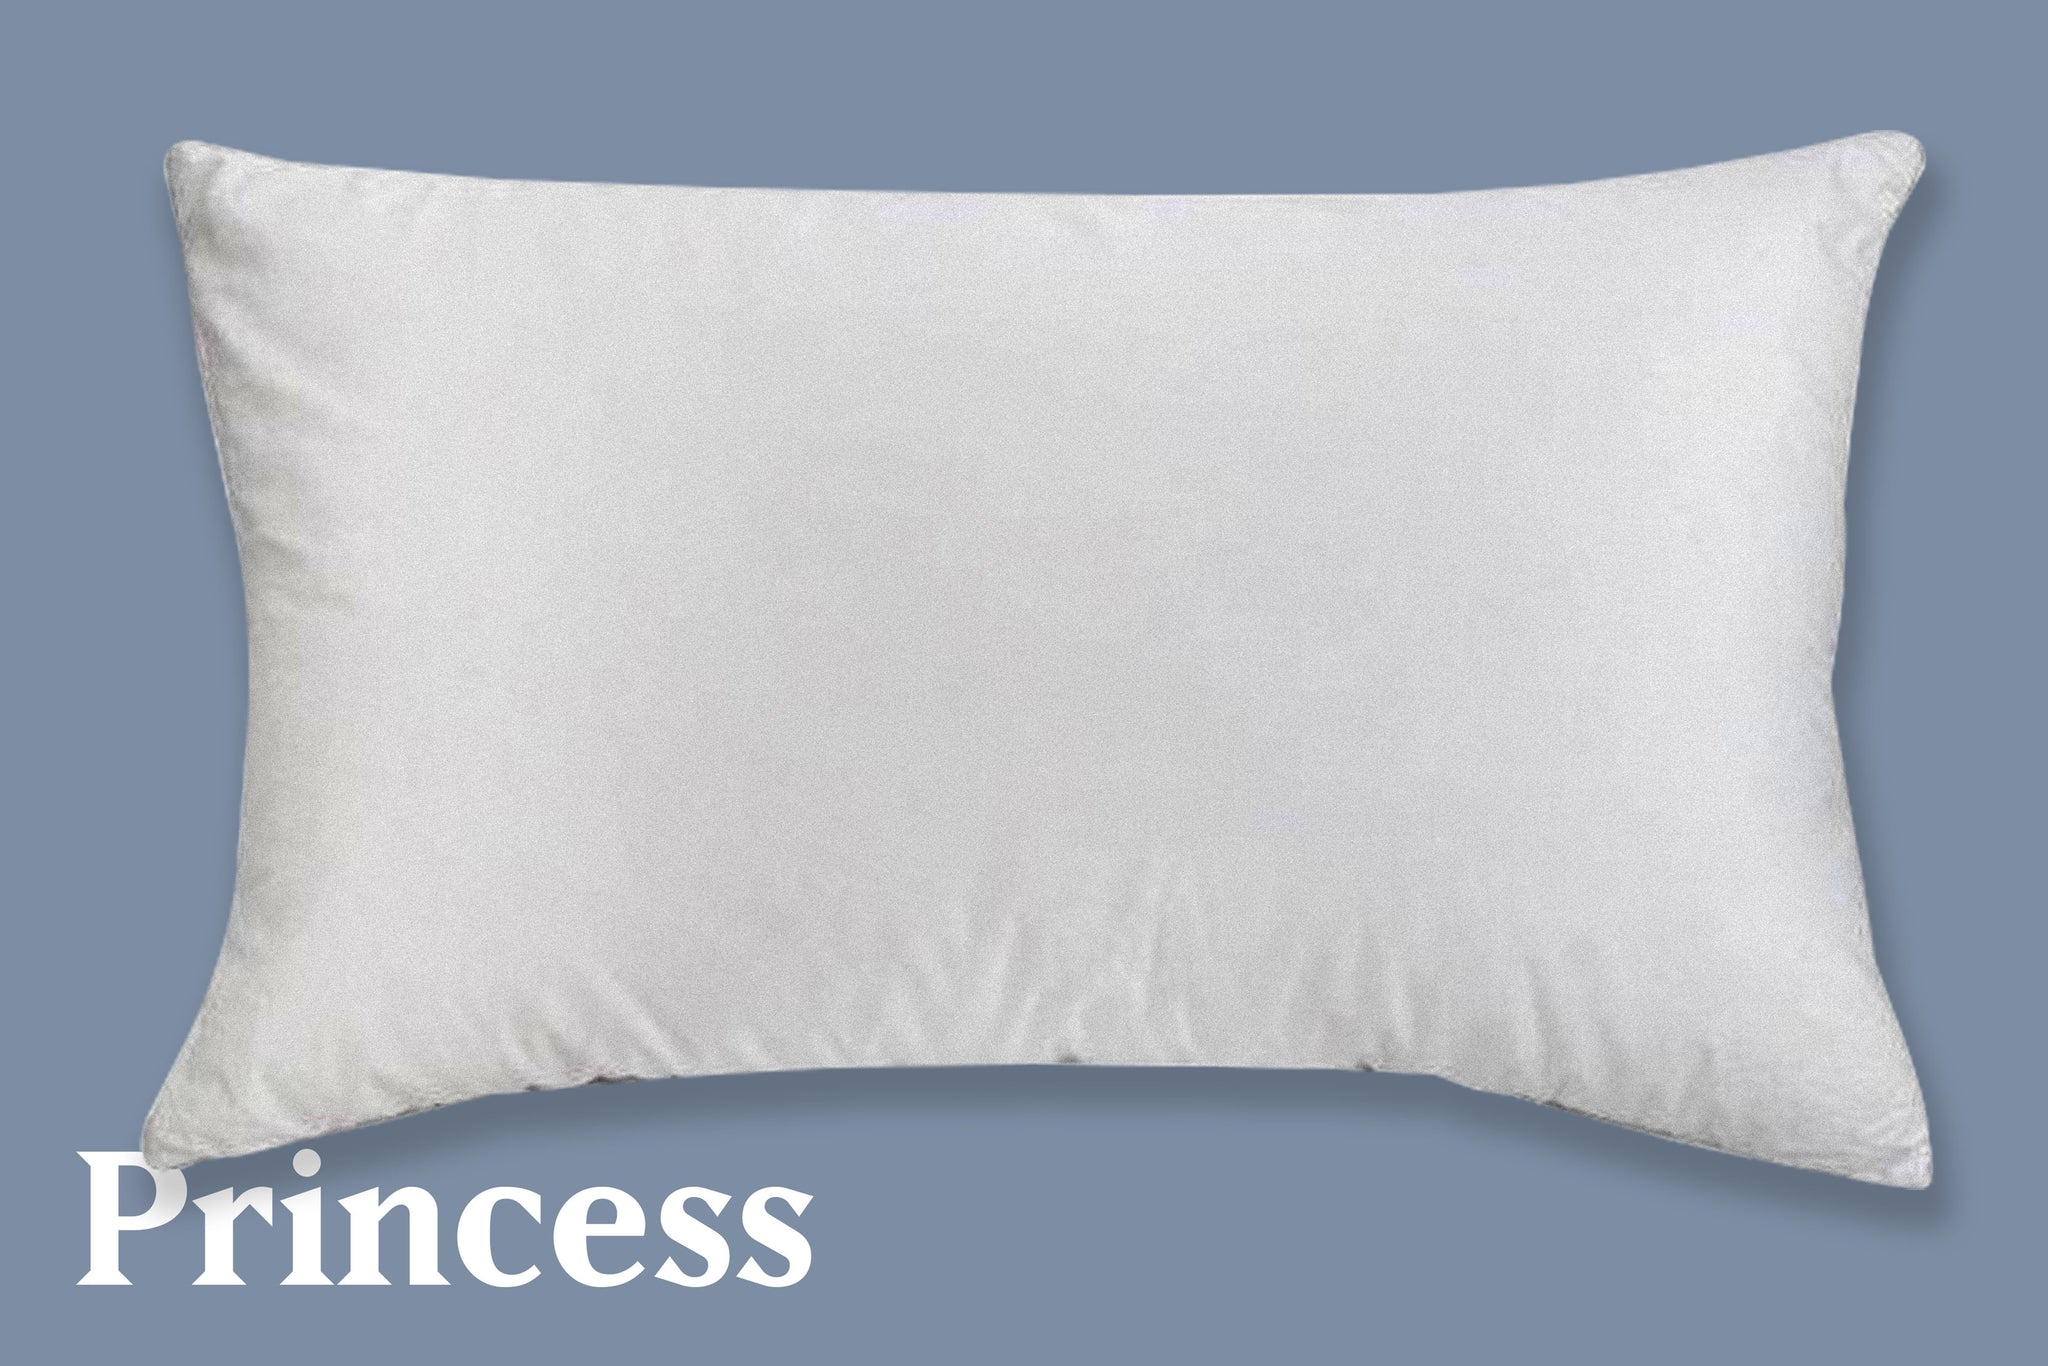 Princess | European Goose Down Pillow